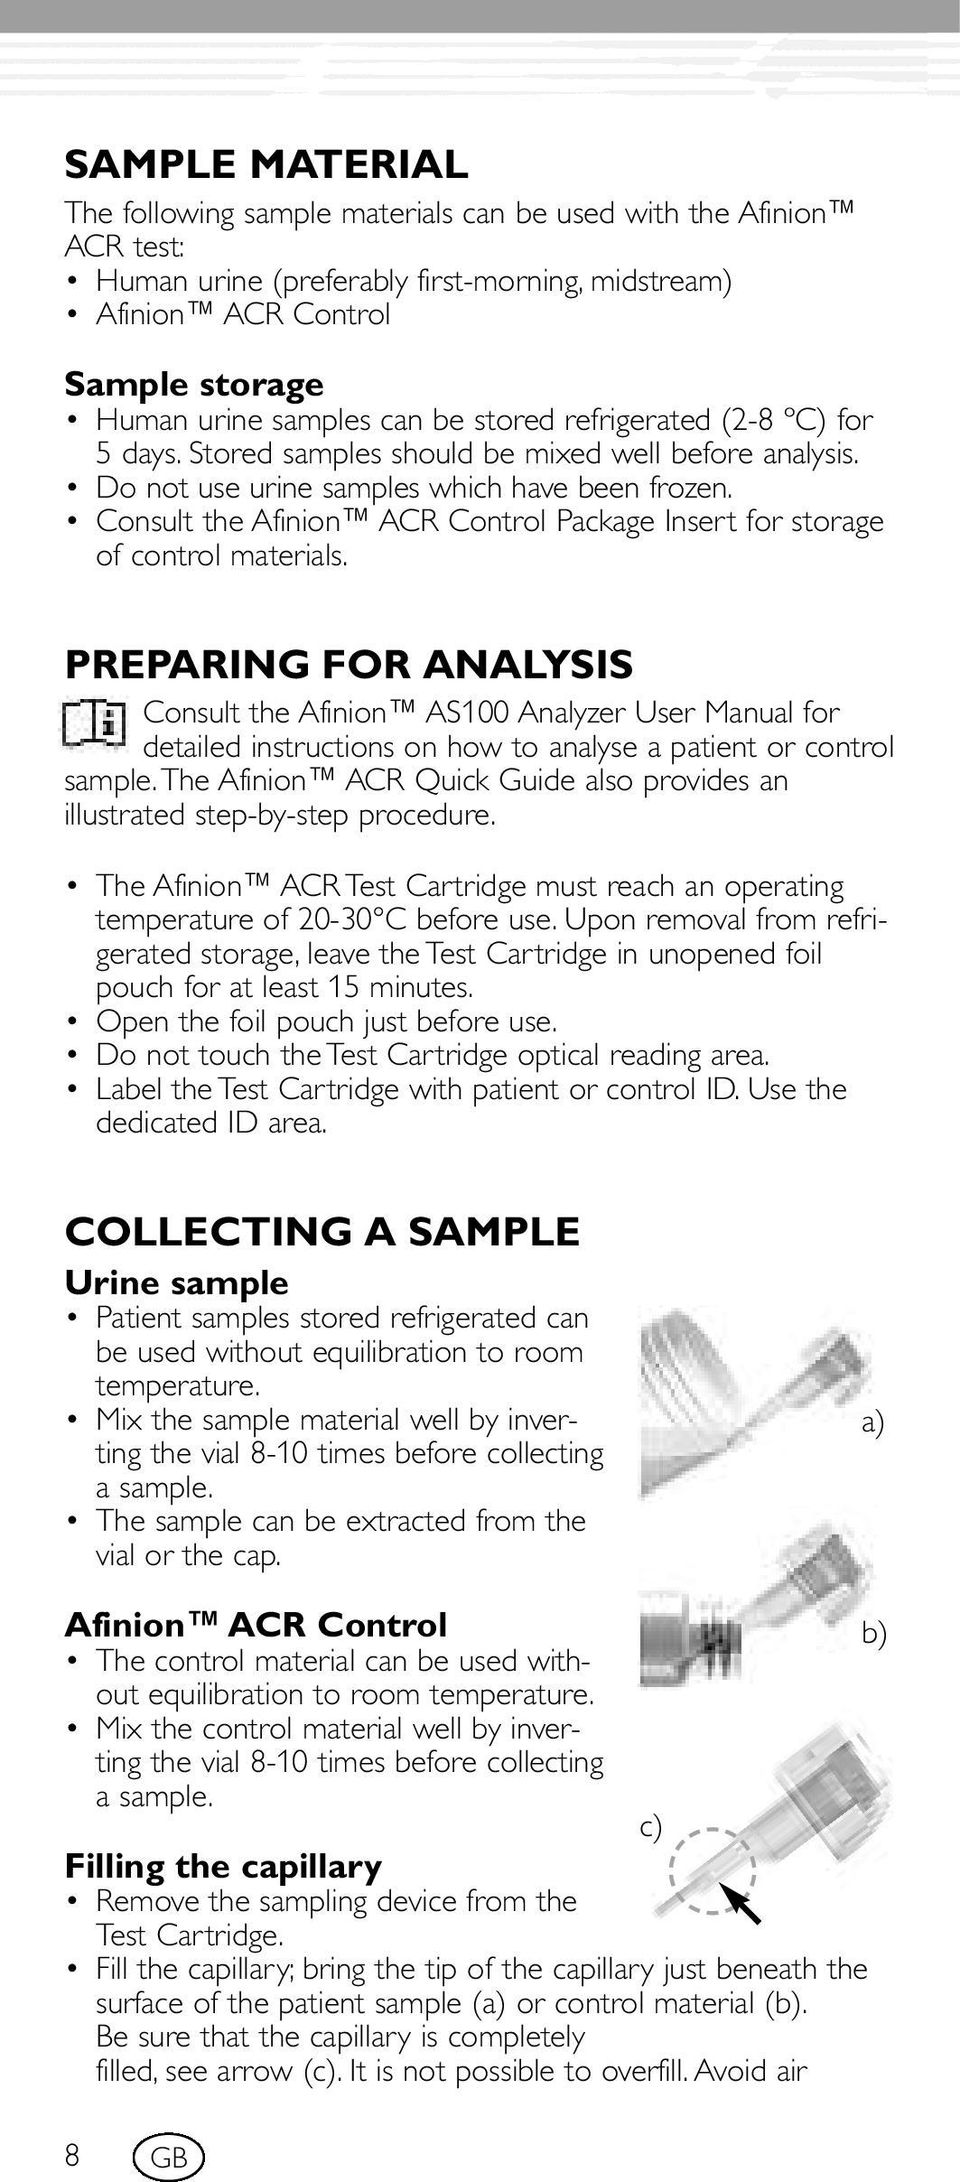 Consult the Afinion ACR Control Package Insert for storage of control materials.